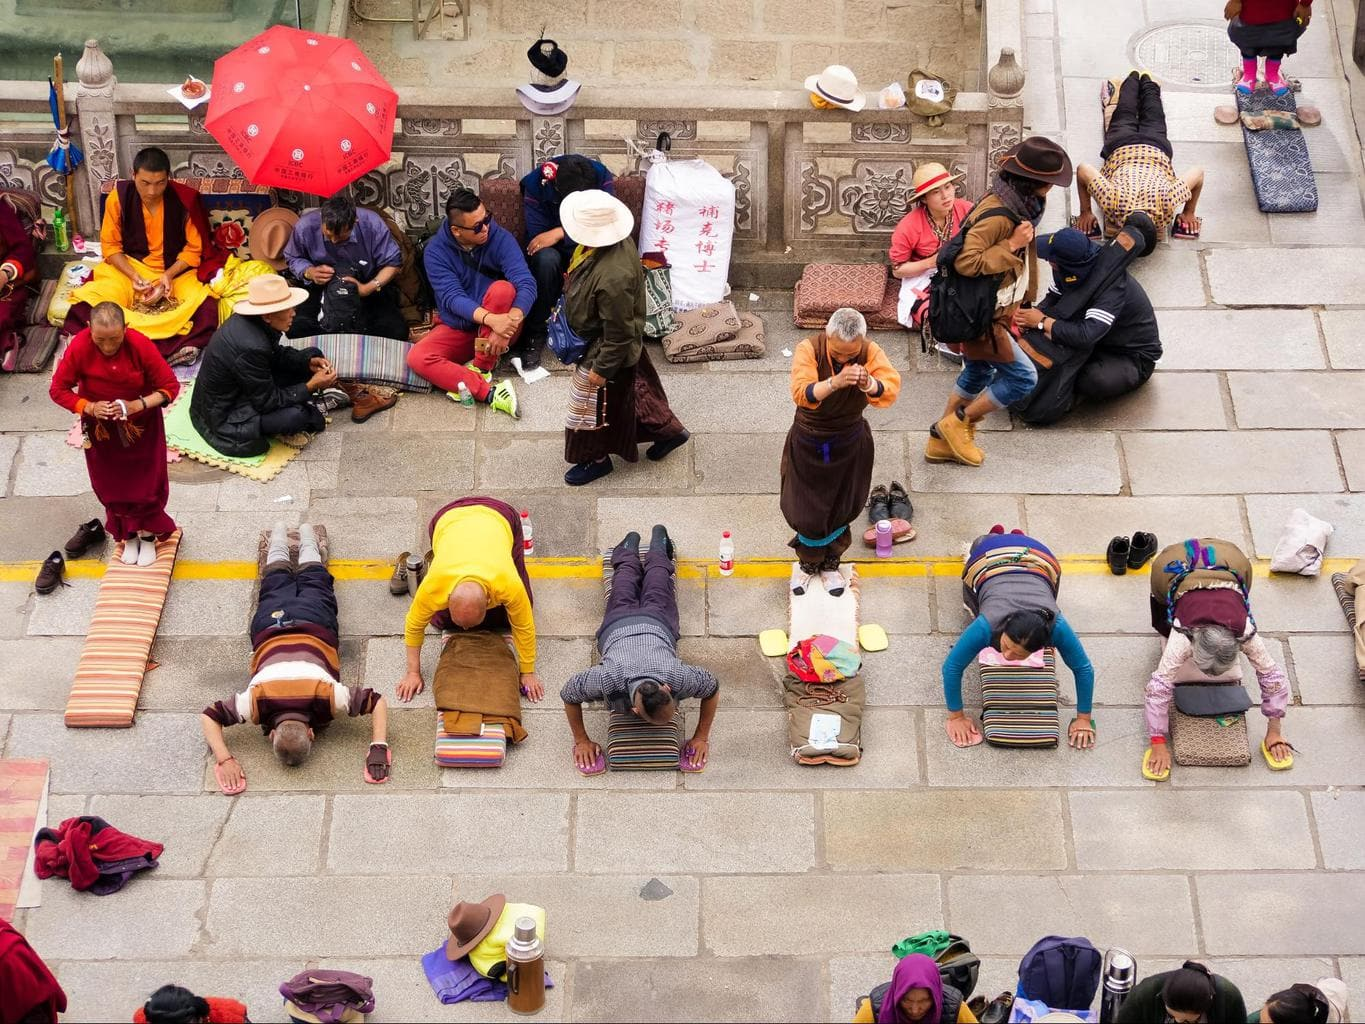 Locals prostrating in front of Jokhang Temple